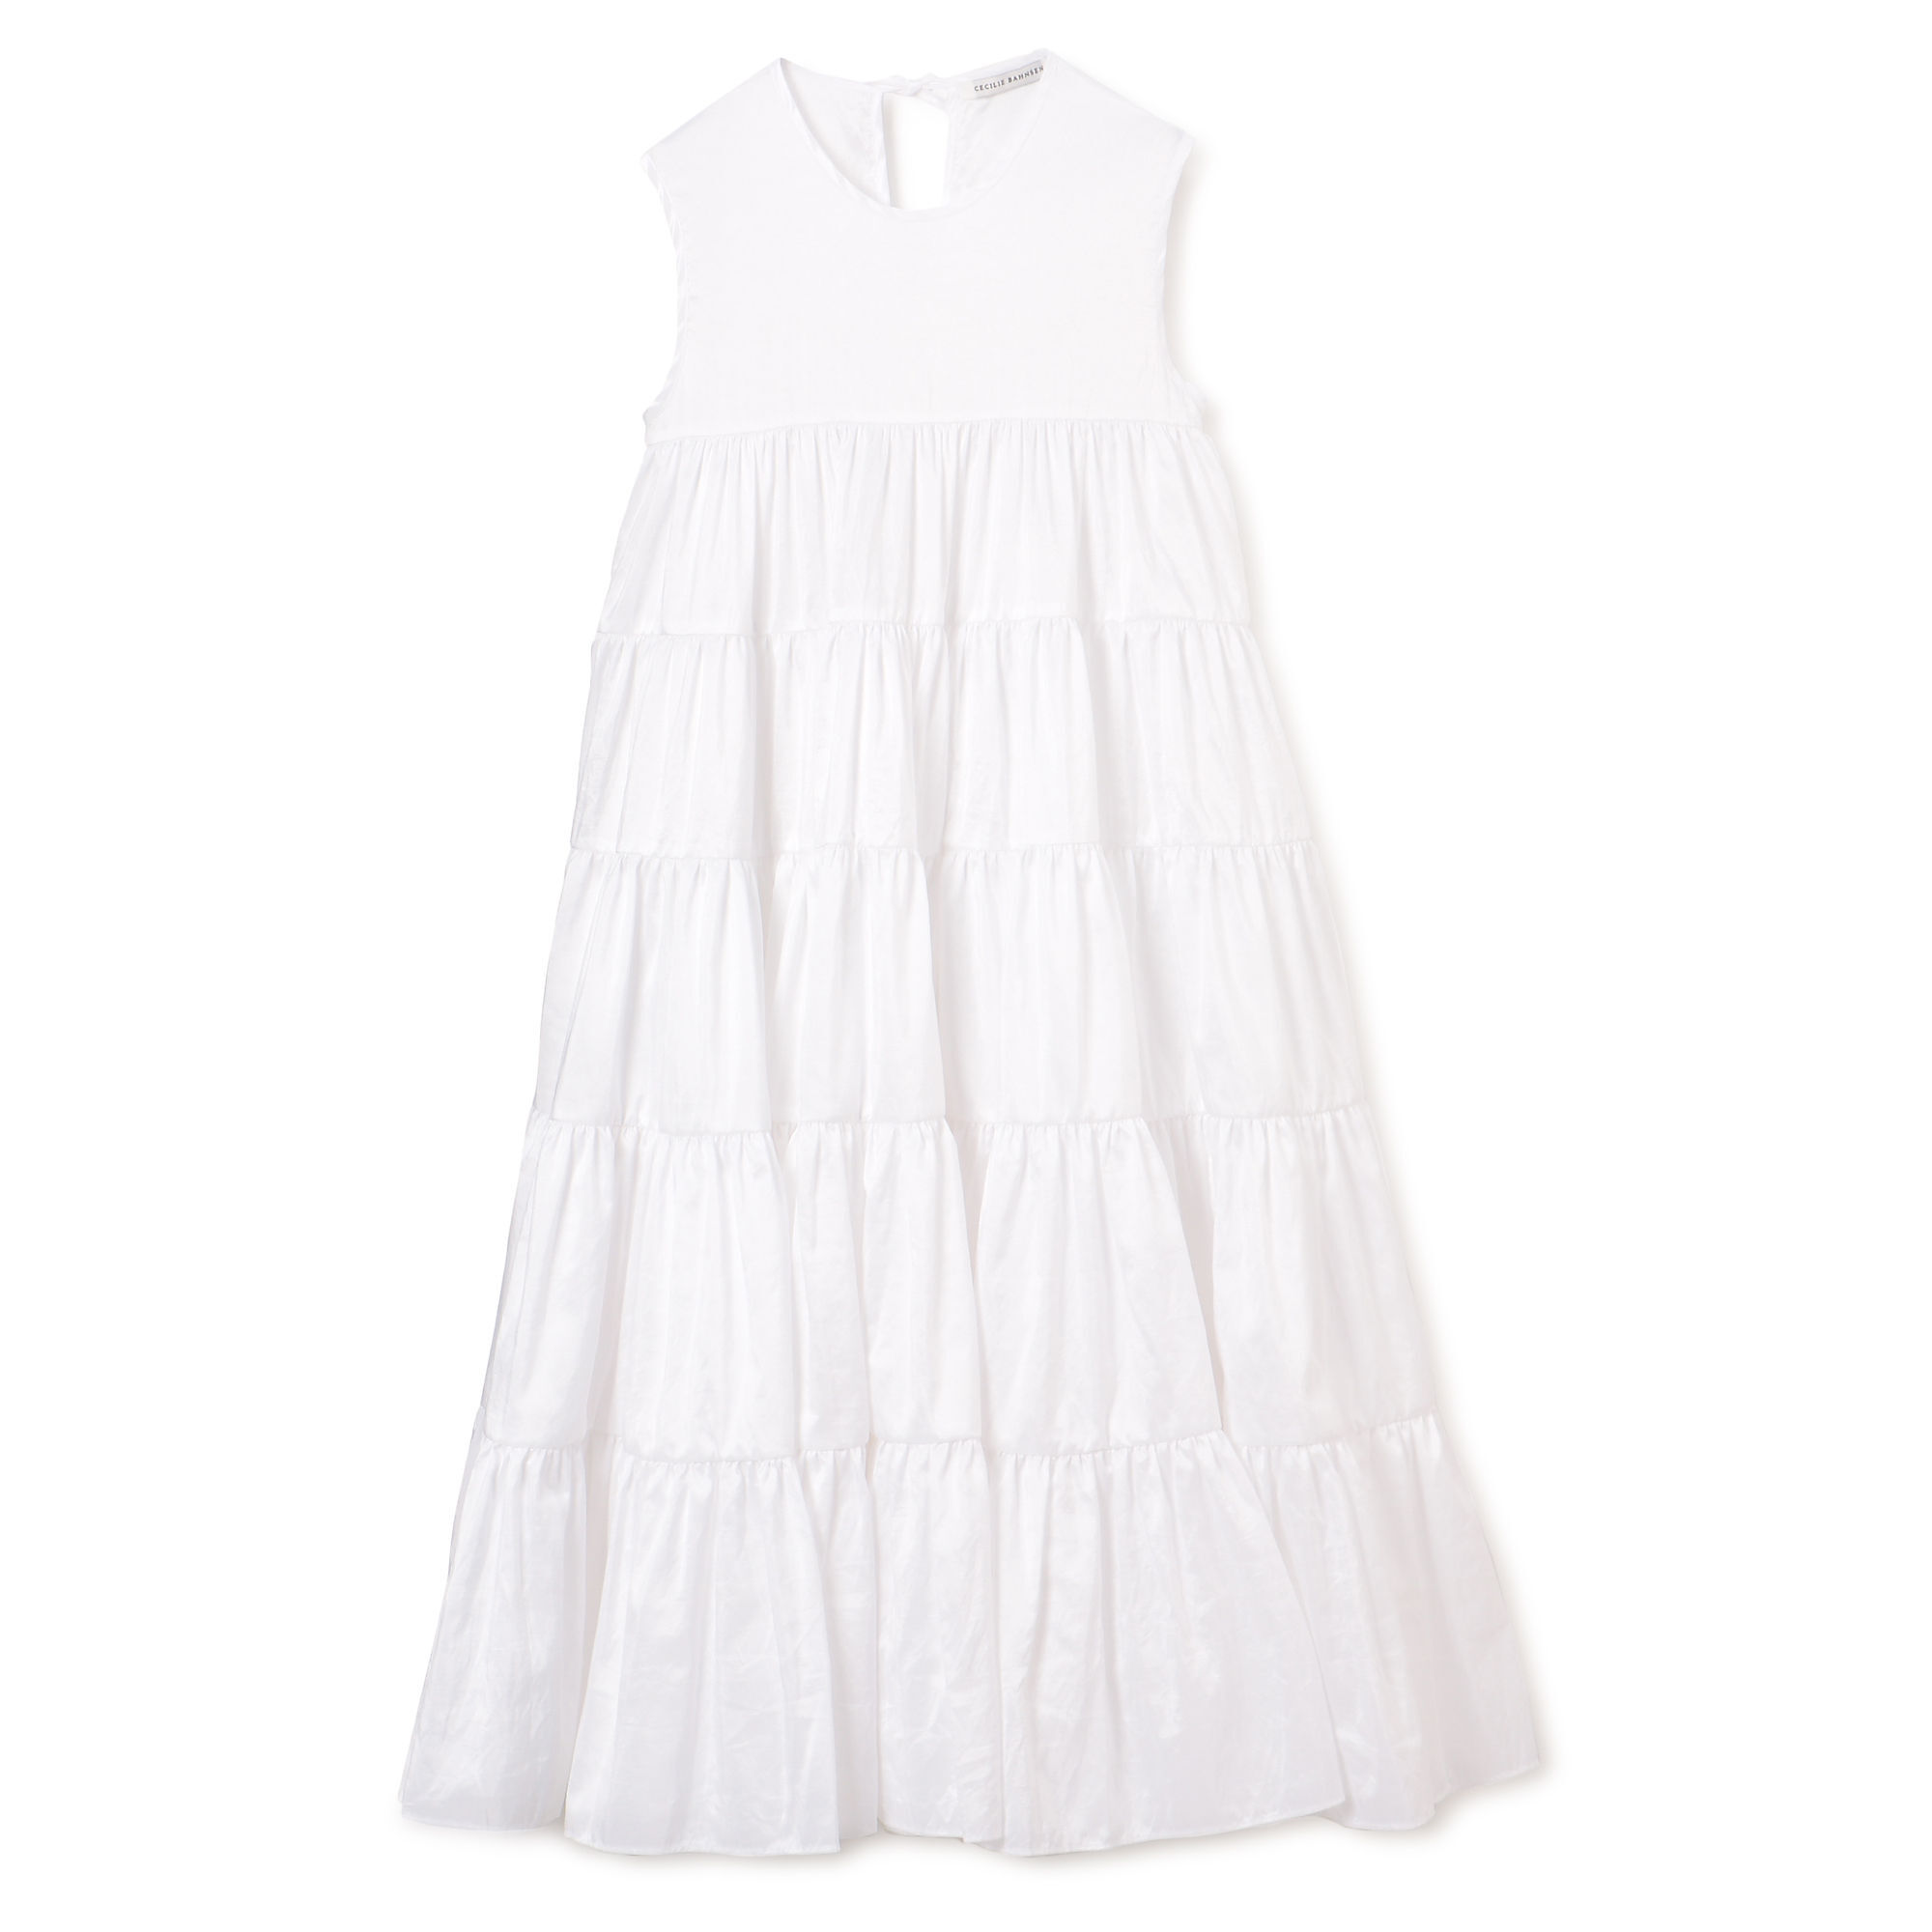 CECILIE BAHNSEMN EMMI DRESS